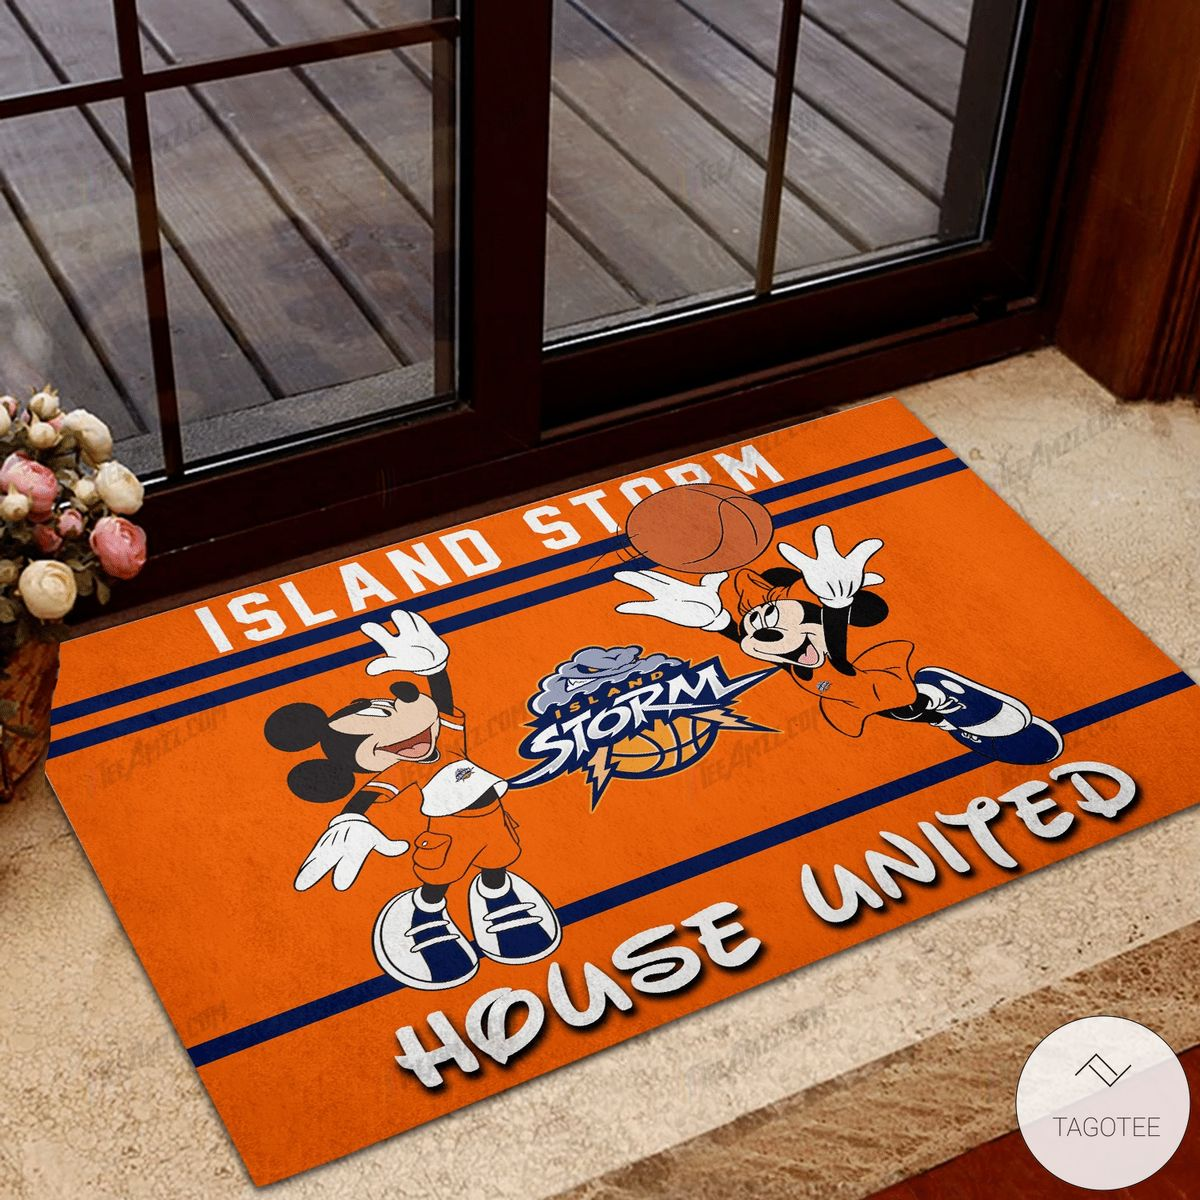 Island Storm House United Mickey Mouse And Minnie Mouse Doormat